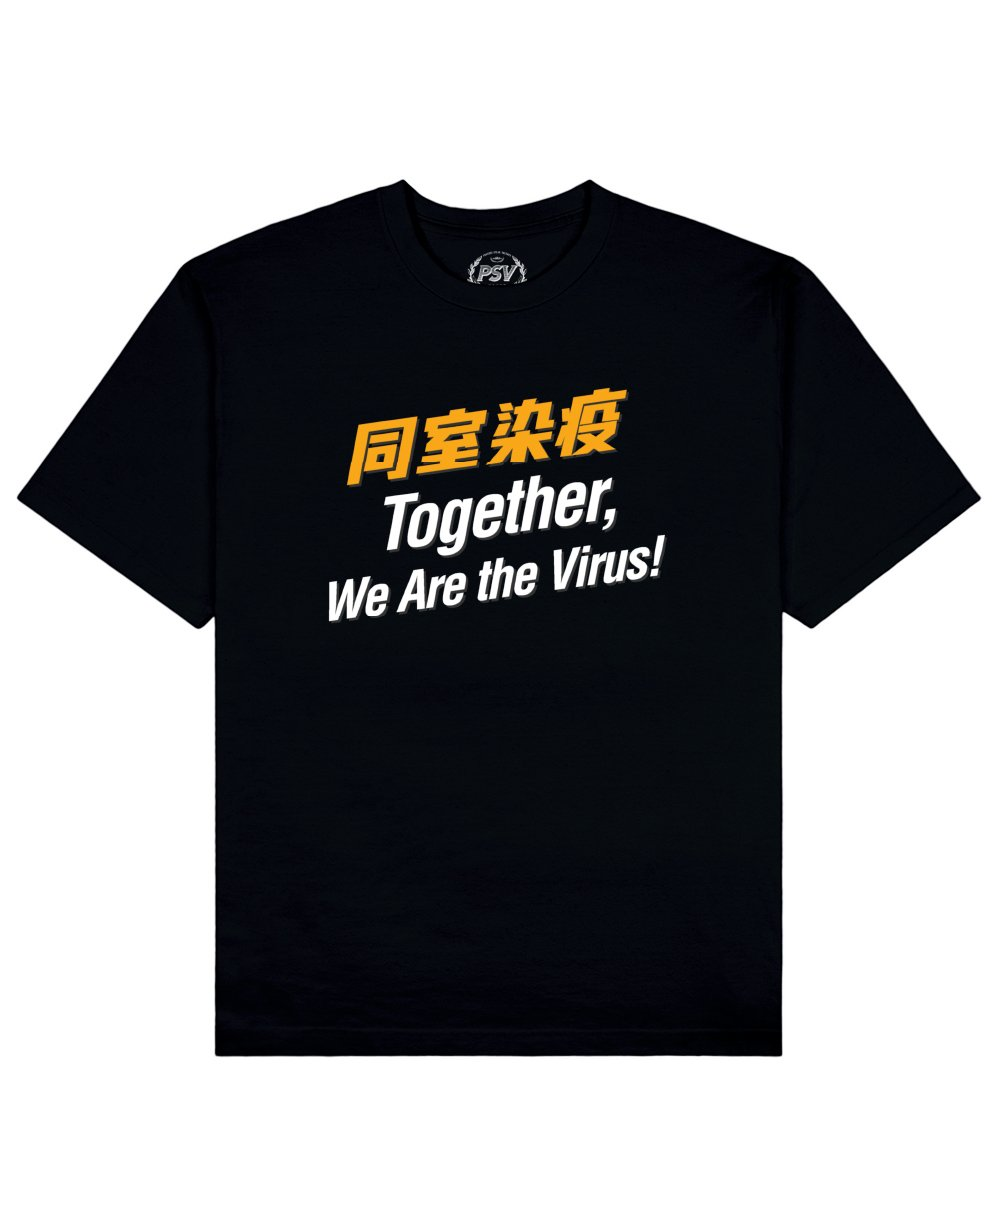 Together, We Are the Virus! Print T-Shirt in Black - T-Shirts - PSV - BRANMA